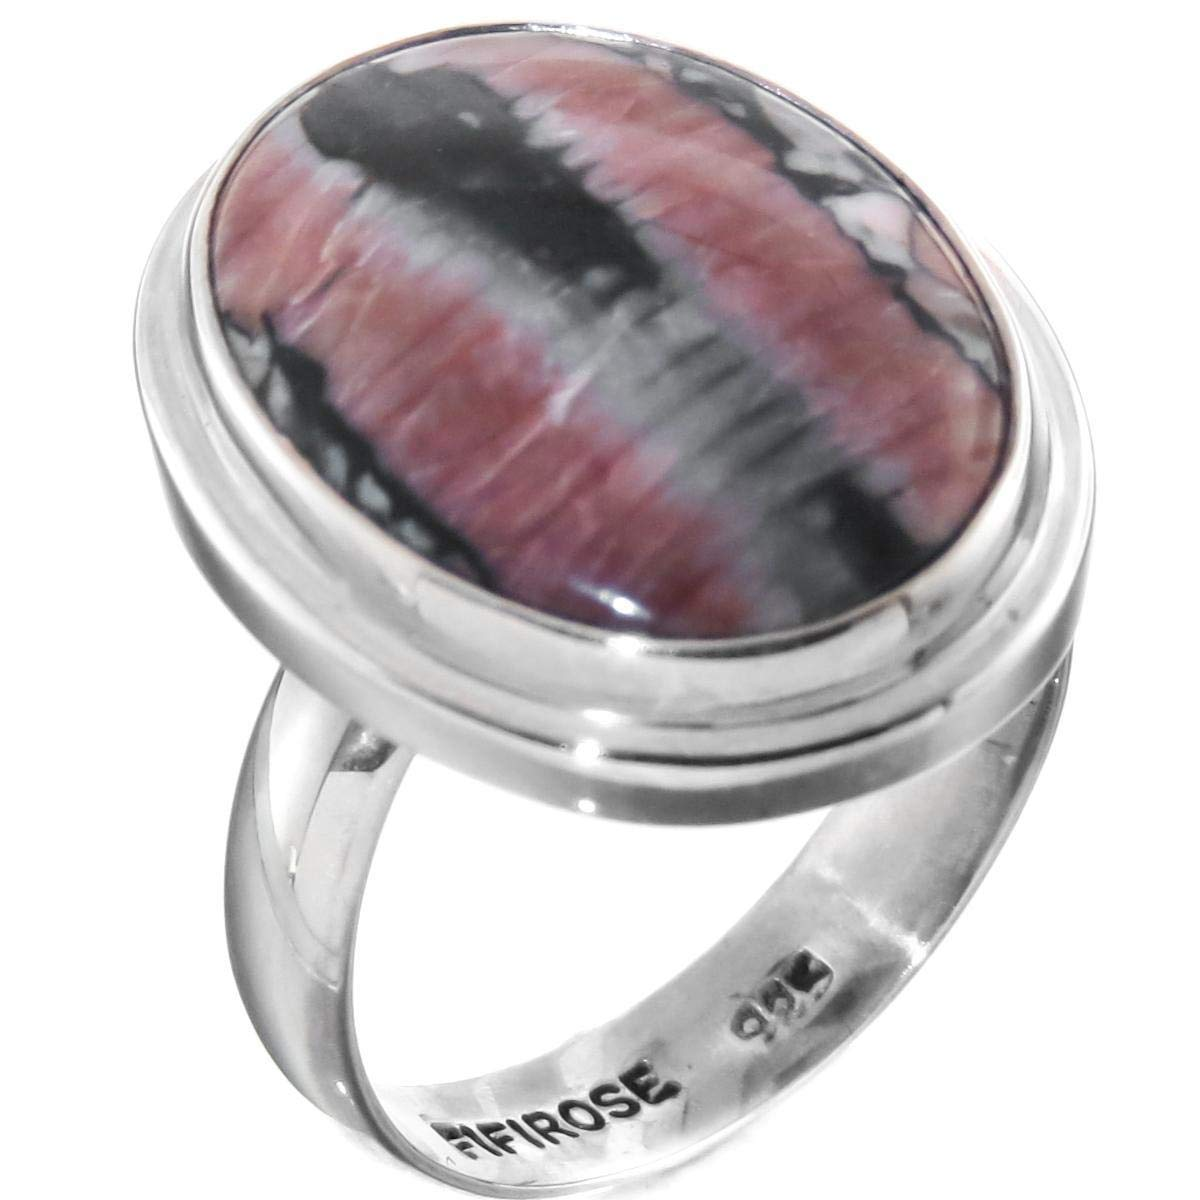 7//8 Crinoid Fossil 925 Sterling Silver Adjustable SZ 8 Ring YE-3100